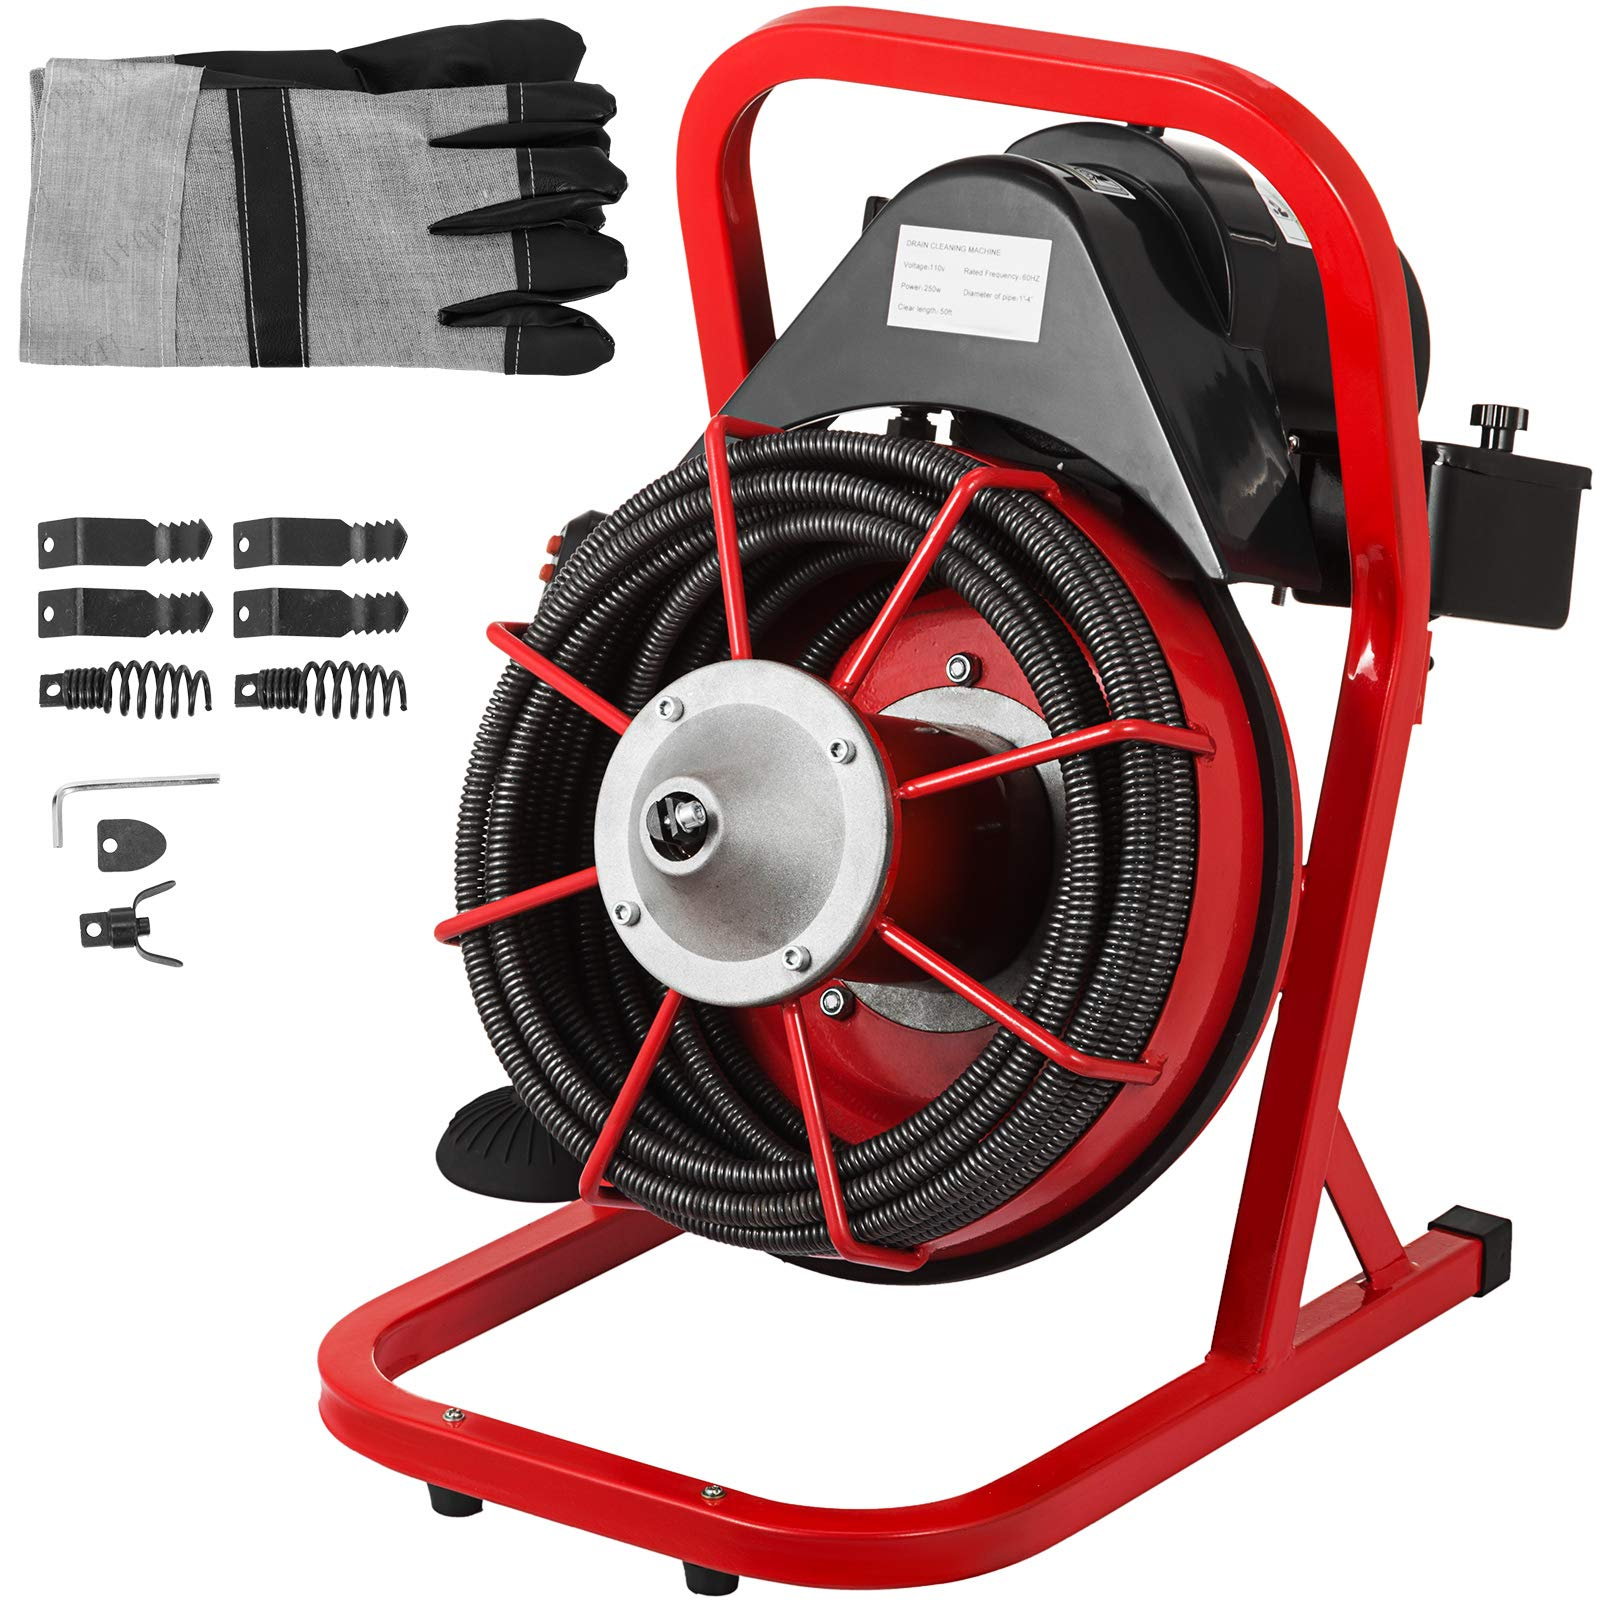 VEVOR 50 Ft x 1/2 Inch Drain Cleaner Machine Best fit 1''(25mm) to 4''(100mm) Pipes Drain Cleaning Machine Portable Drain Auger Cleaner with 4 Cutters Electric Drain Auger Plumbing Tool (50Ft x 1/2In) by VEVOR (Image #1)